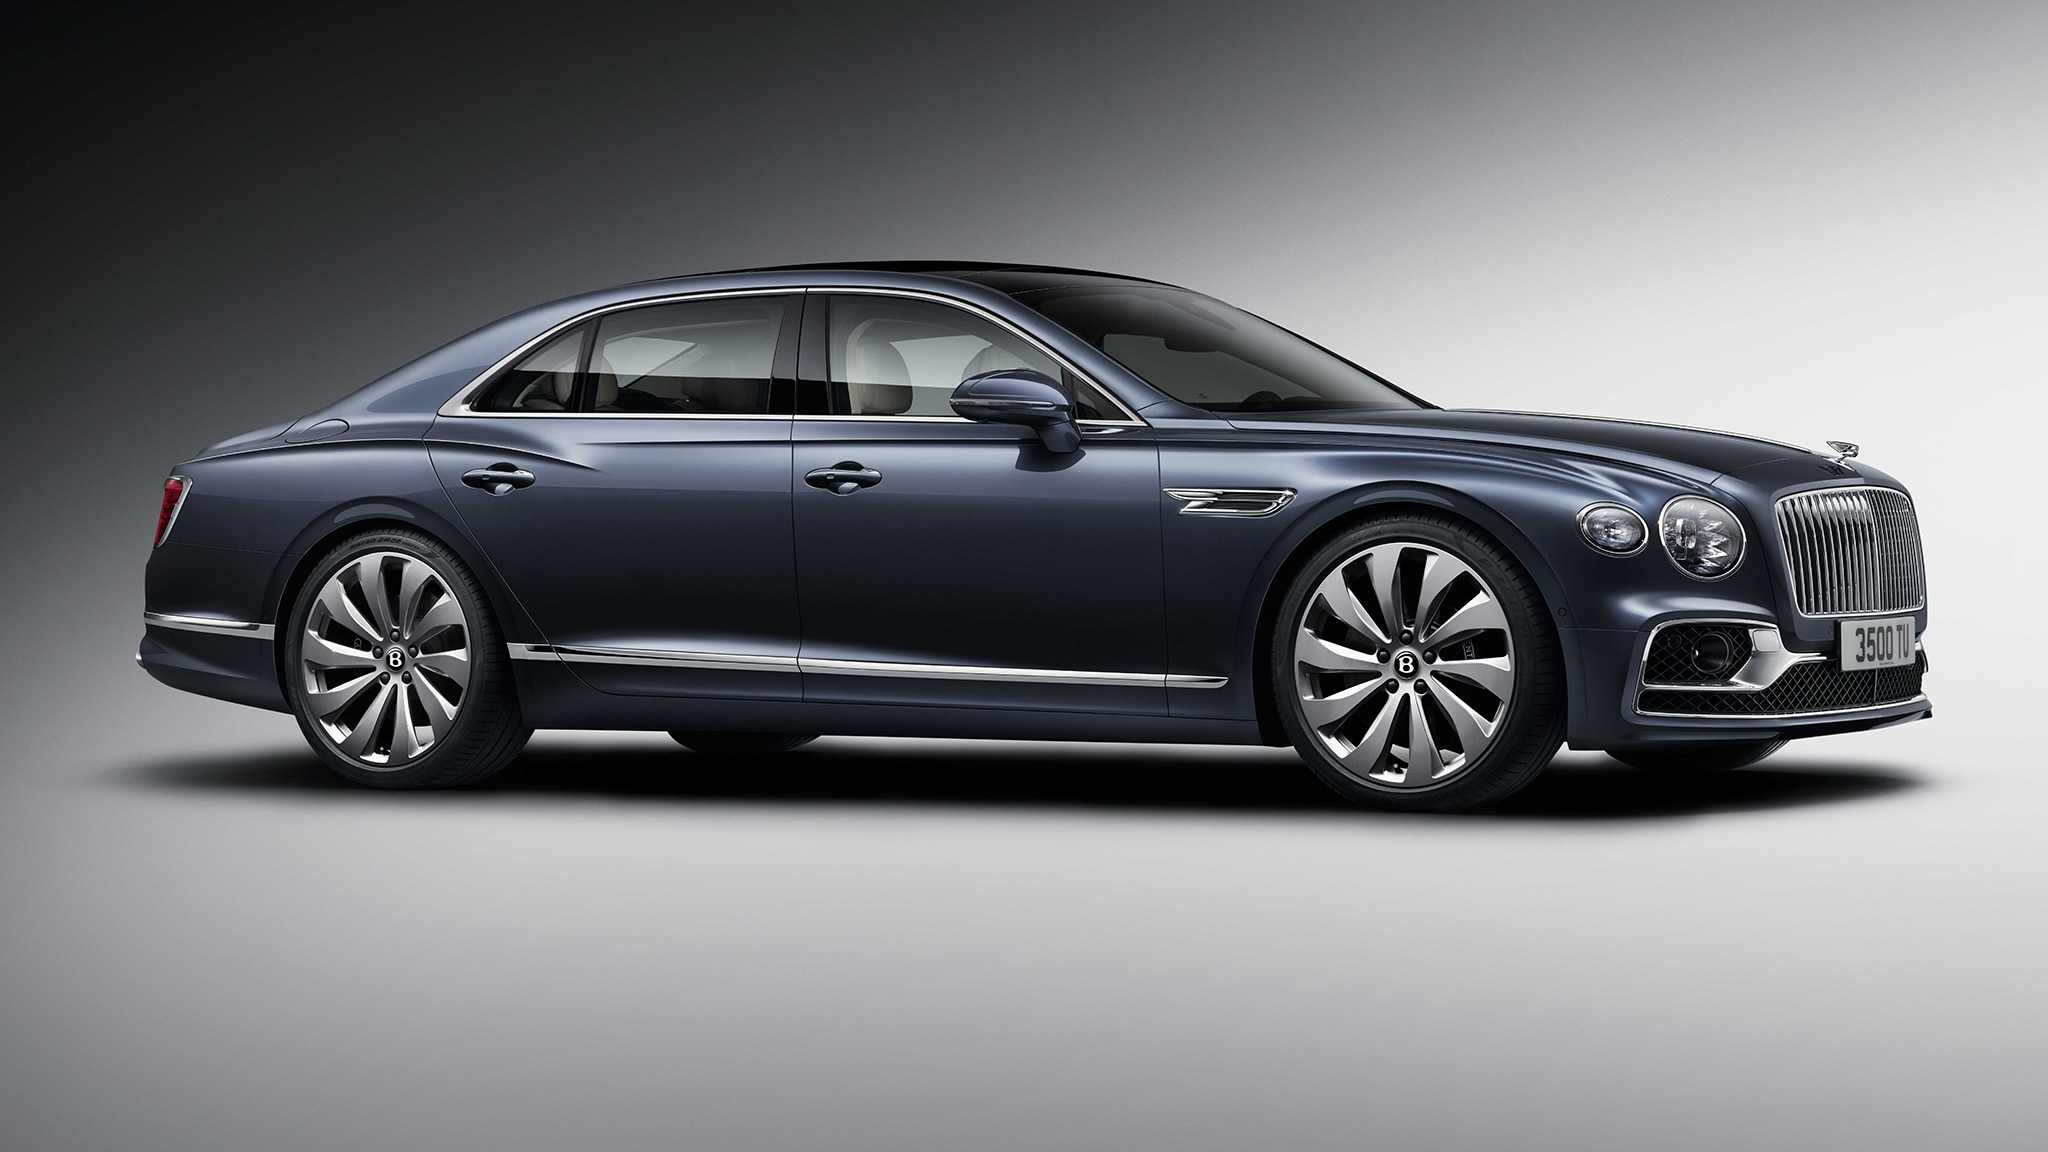 Old Cadillac Cars Hd Wallpapers 2020 Bentley Flying Spur Elegant Looks Big Time